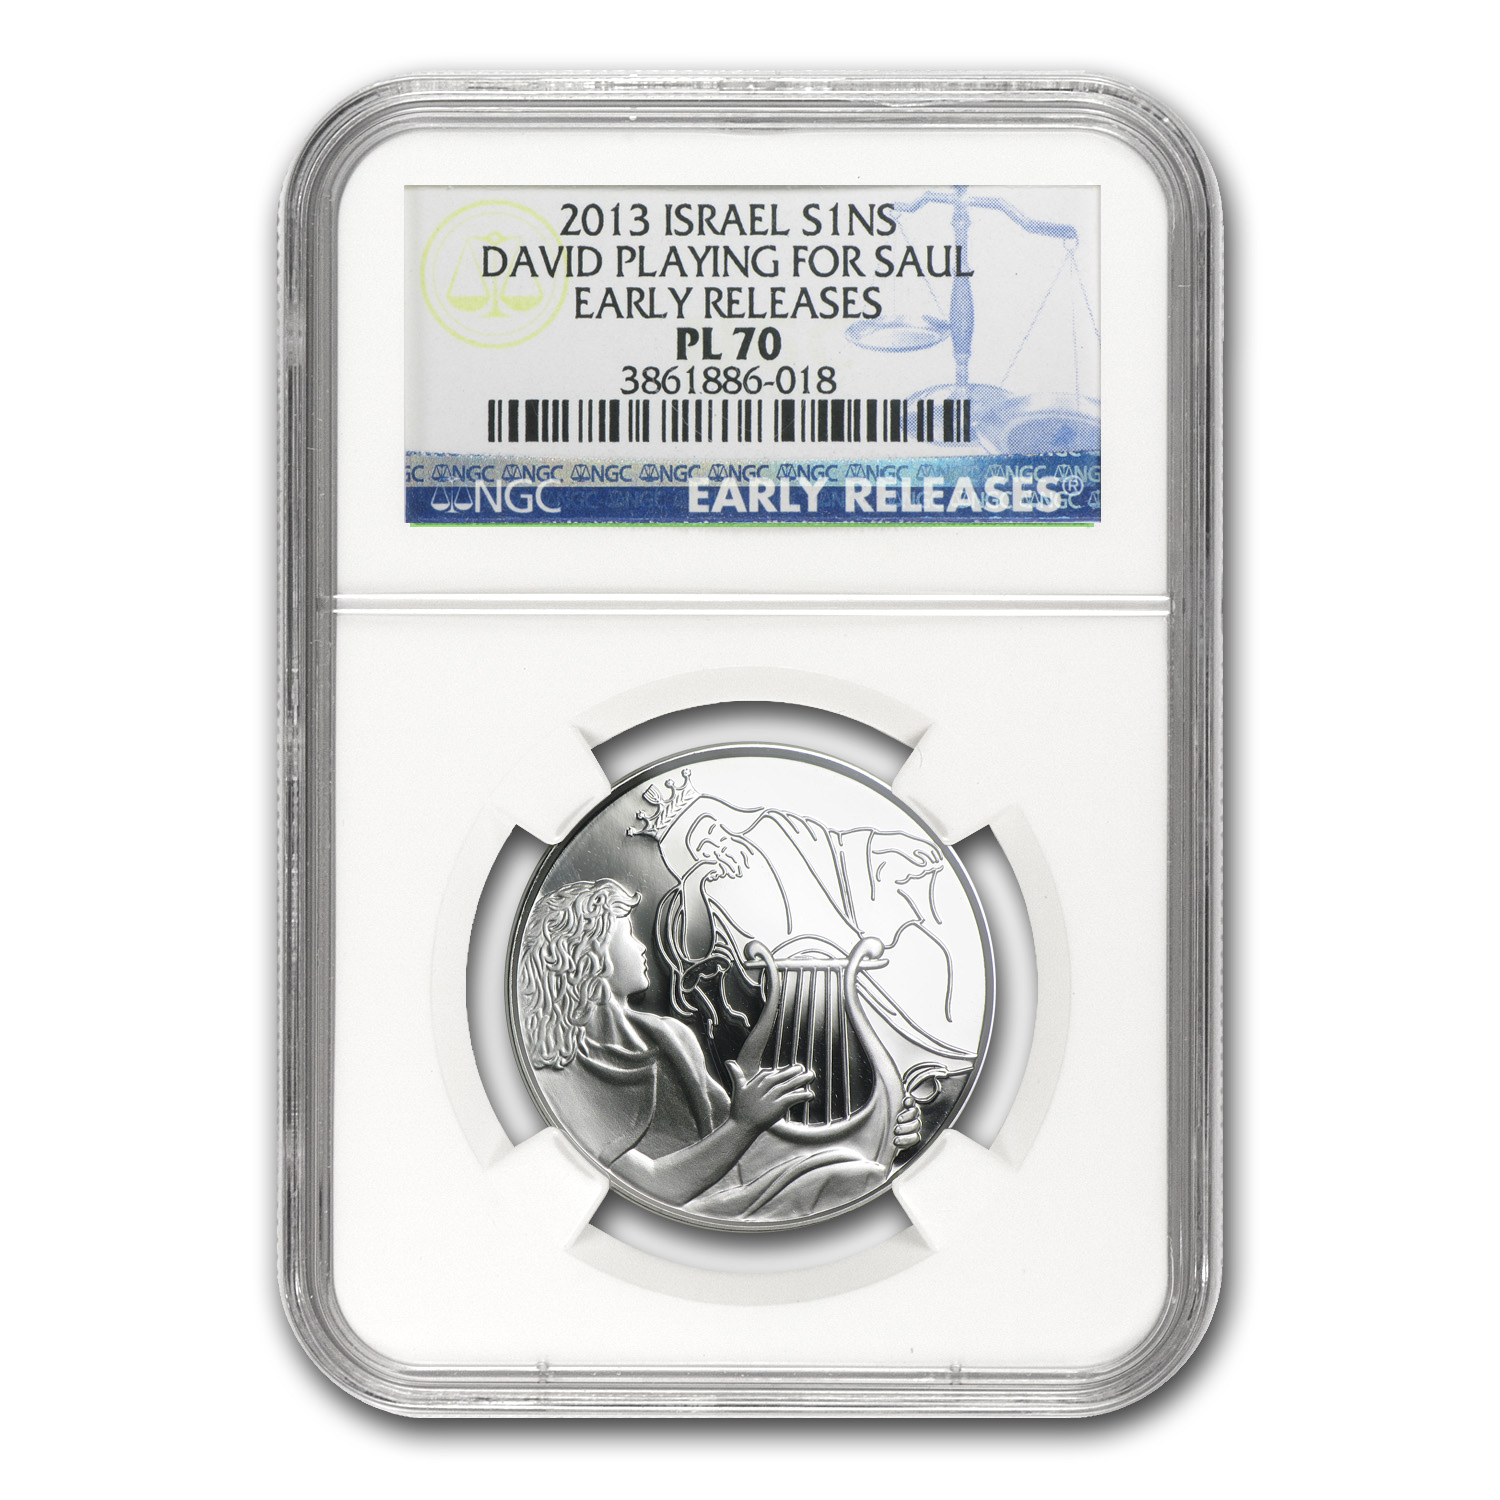 2013 Israel Silver 1 NIS David Playing for Saul MS-70 NGC (ER)